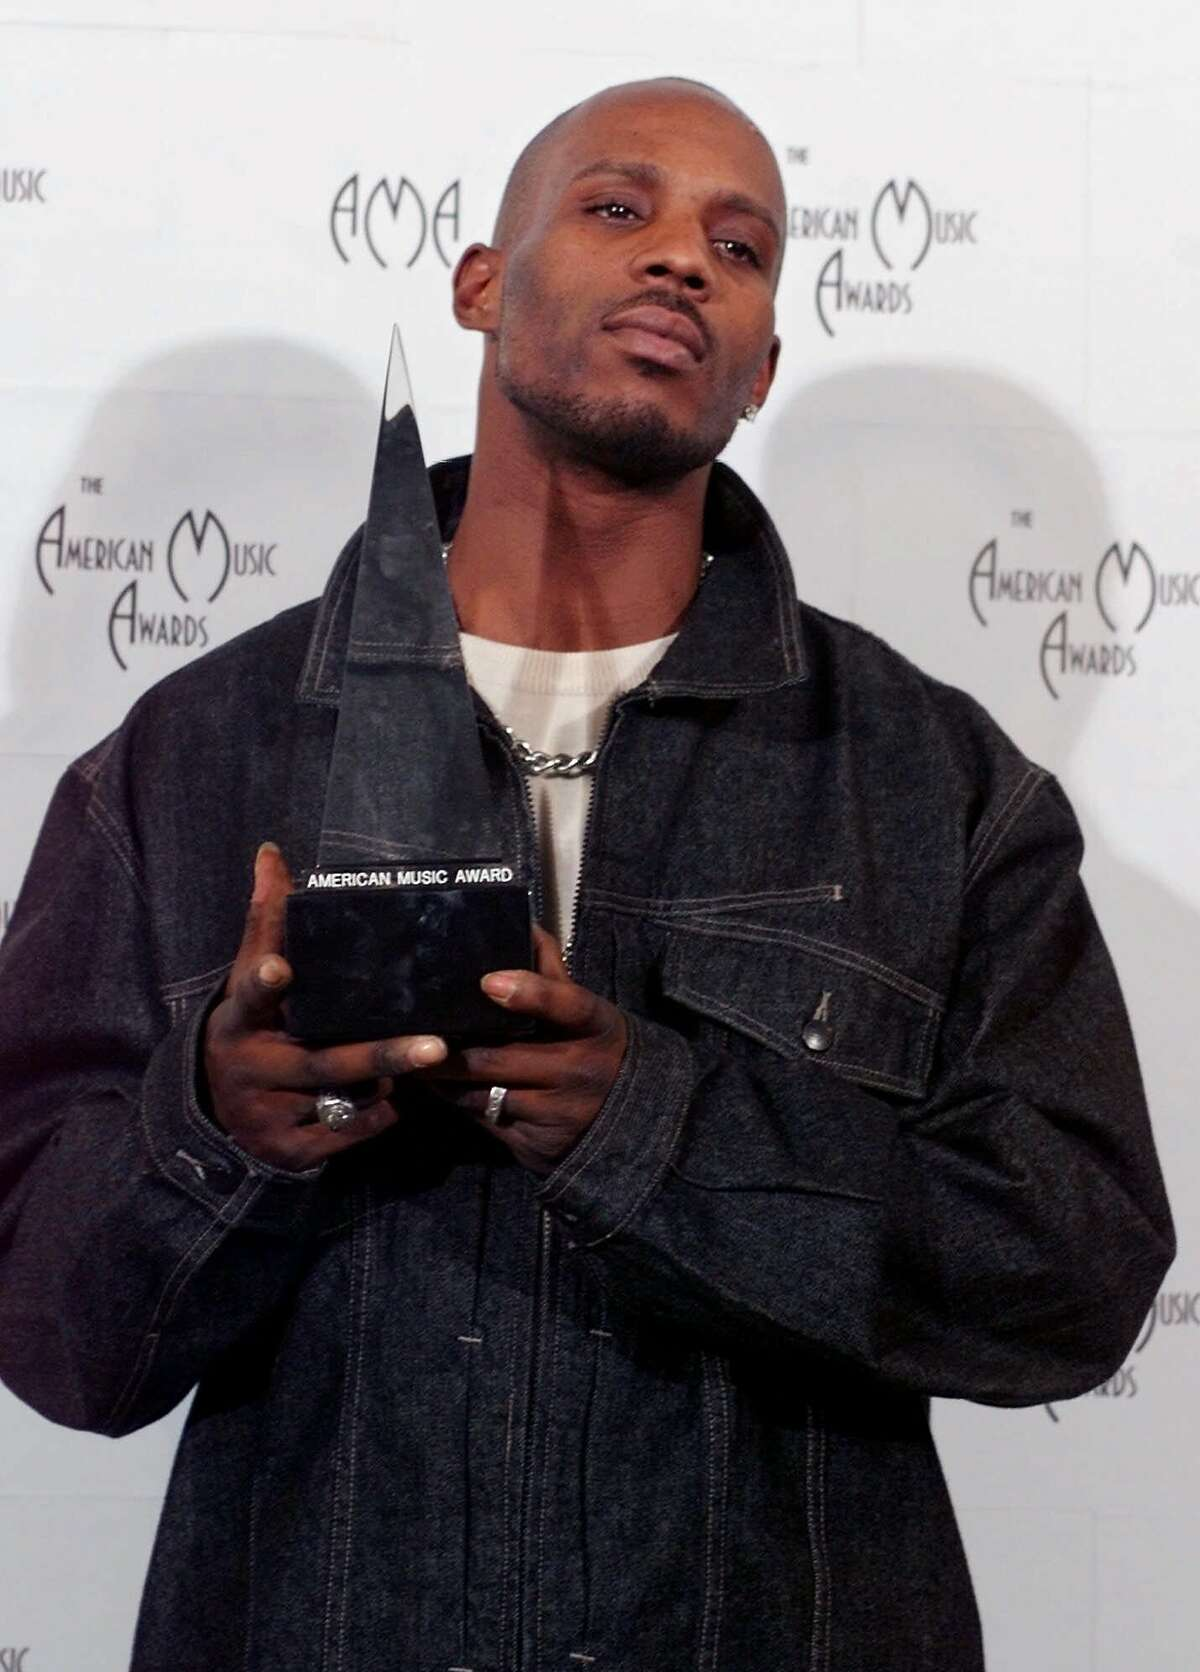 DMX poses with his award for favorite rap/hip hop artist at the American Music Awards, Monday night, Jan. 17, 2000, in Los Angeles. (AP Photo/Michael Caulfield)